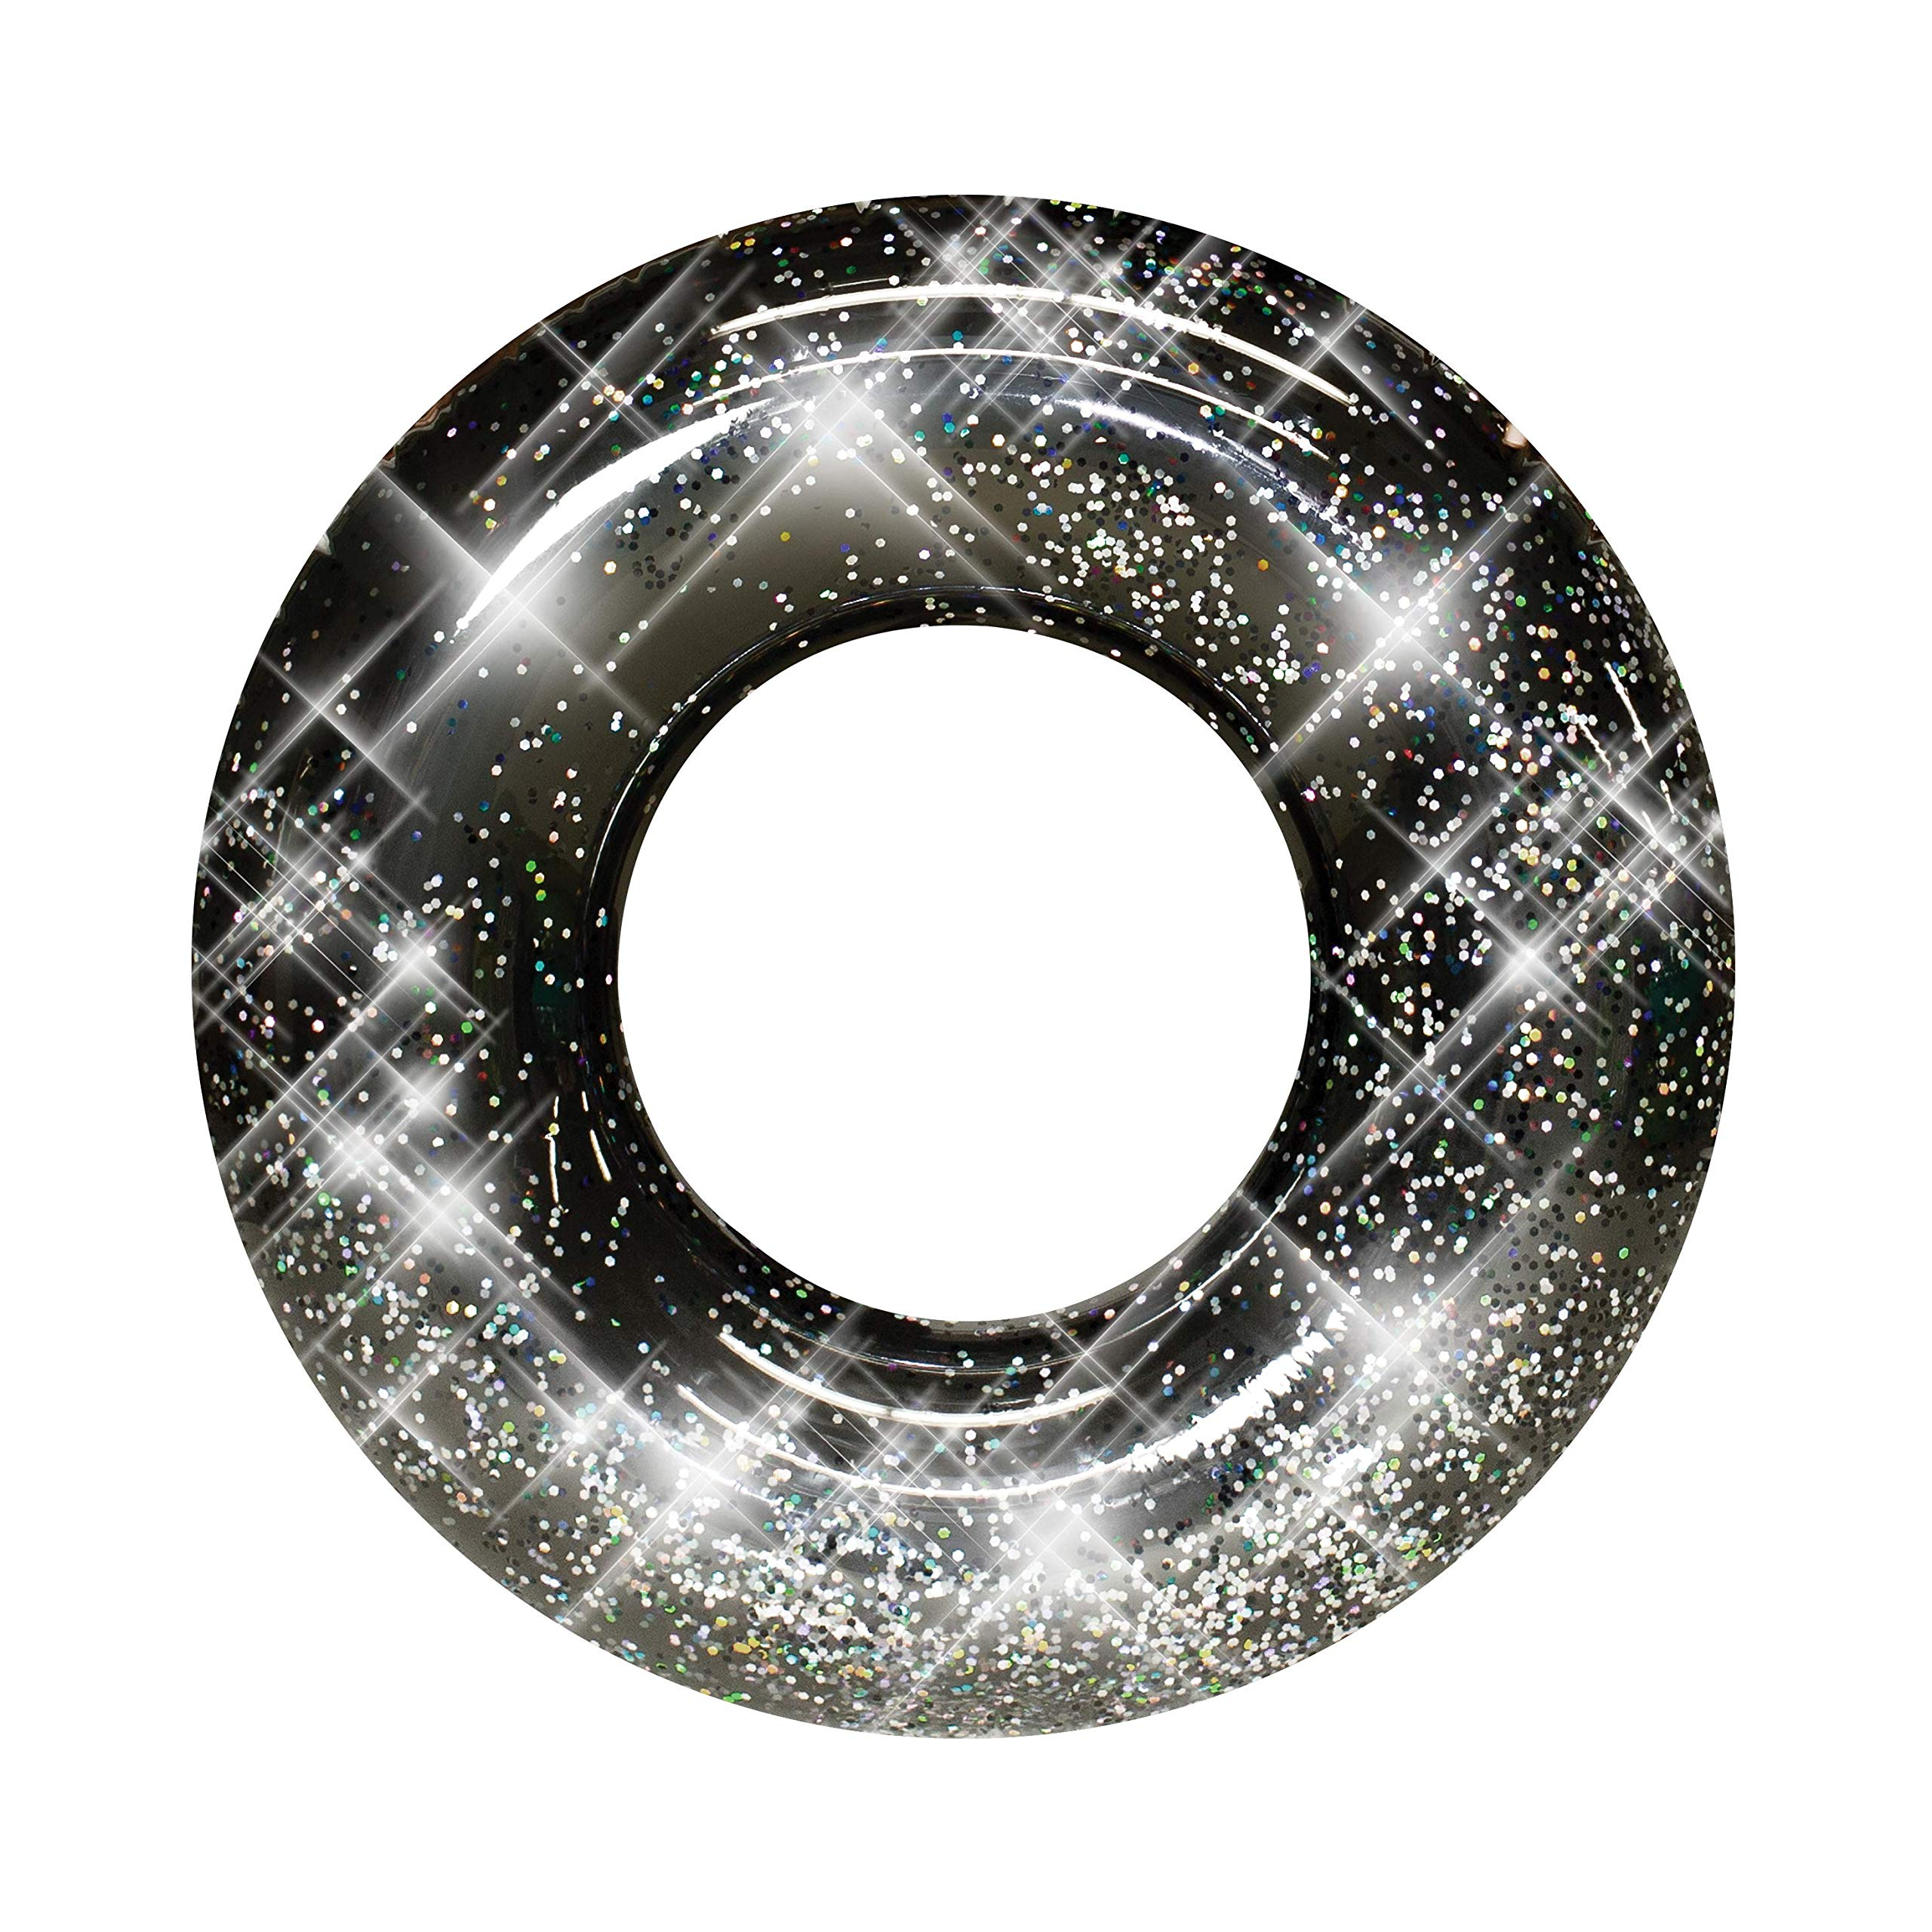 PoolCandy Jumbo 48'' Black Glitter Swim Ring - Extra Large for The Pool Beach or Lake-Kids Teens Adults- Glitter Inside Sparkles and Shines in the Sun - THE ORIGINAL GLITTER INFLATABLE TUBES AND FLOATS by Poolcandy